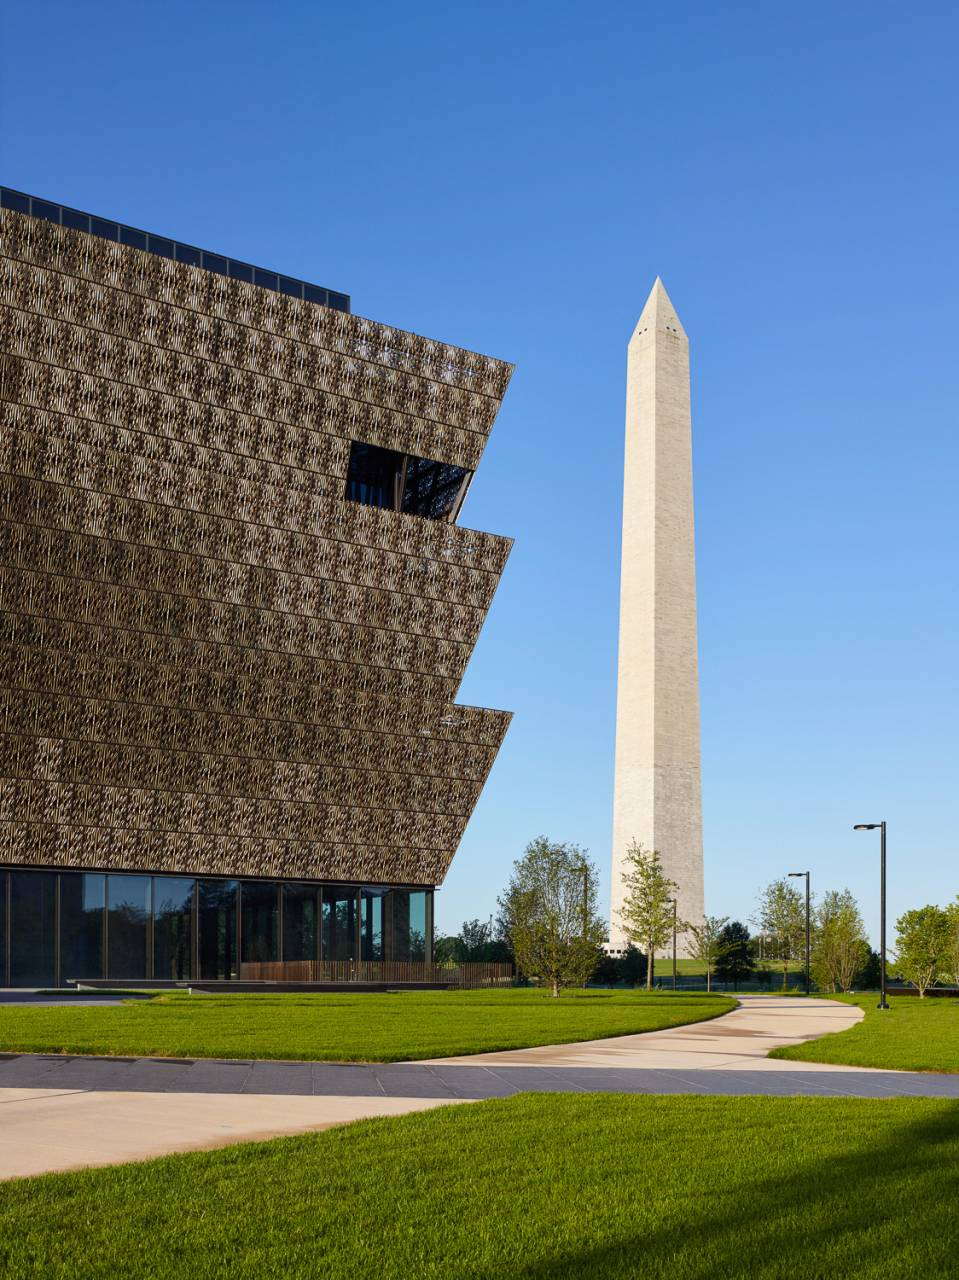 The National Museum of African American History and Culture is an amazing civil rights site to visit with your family.